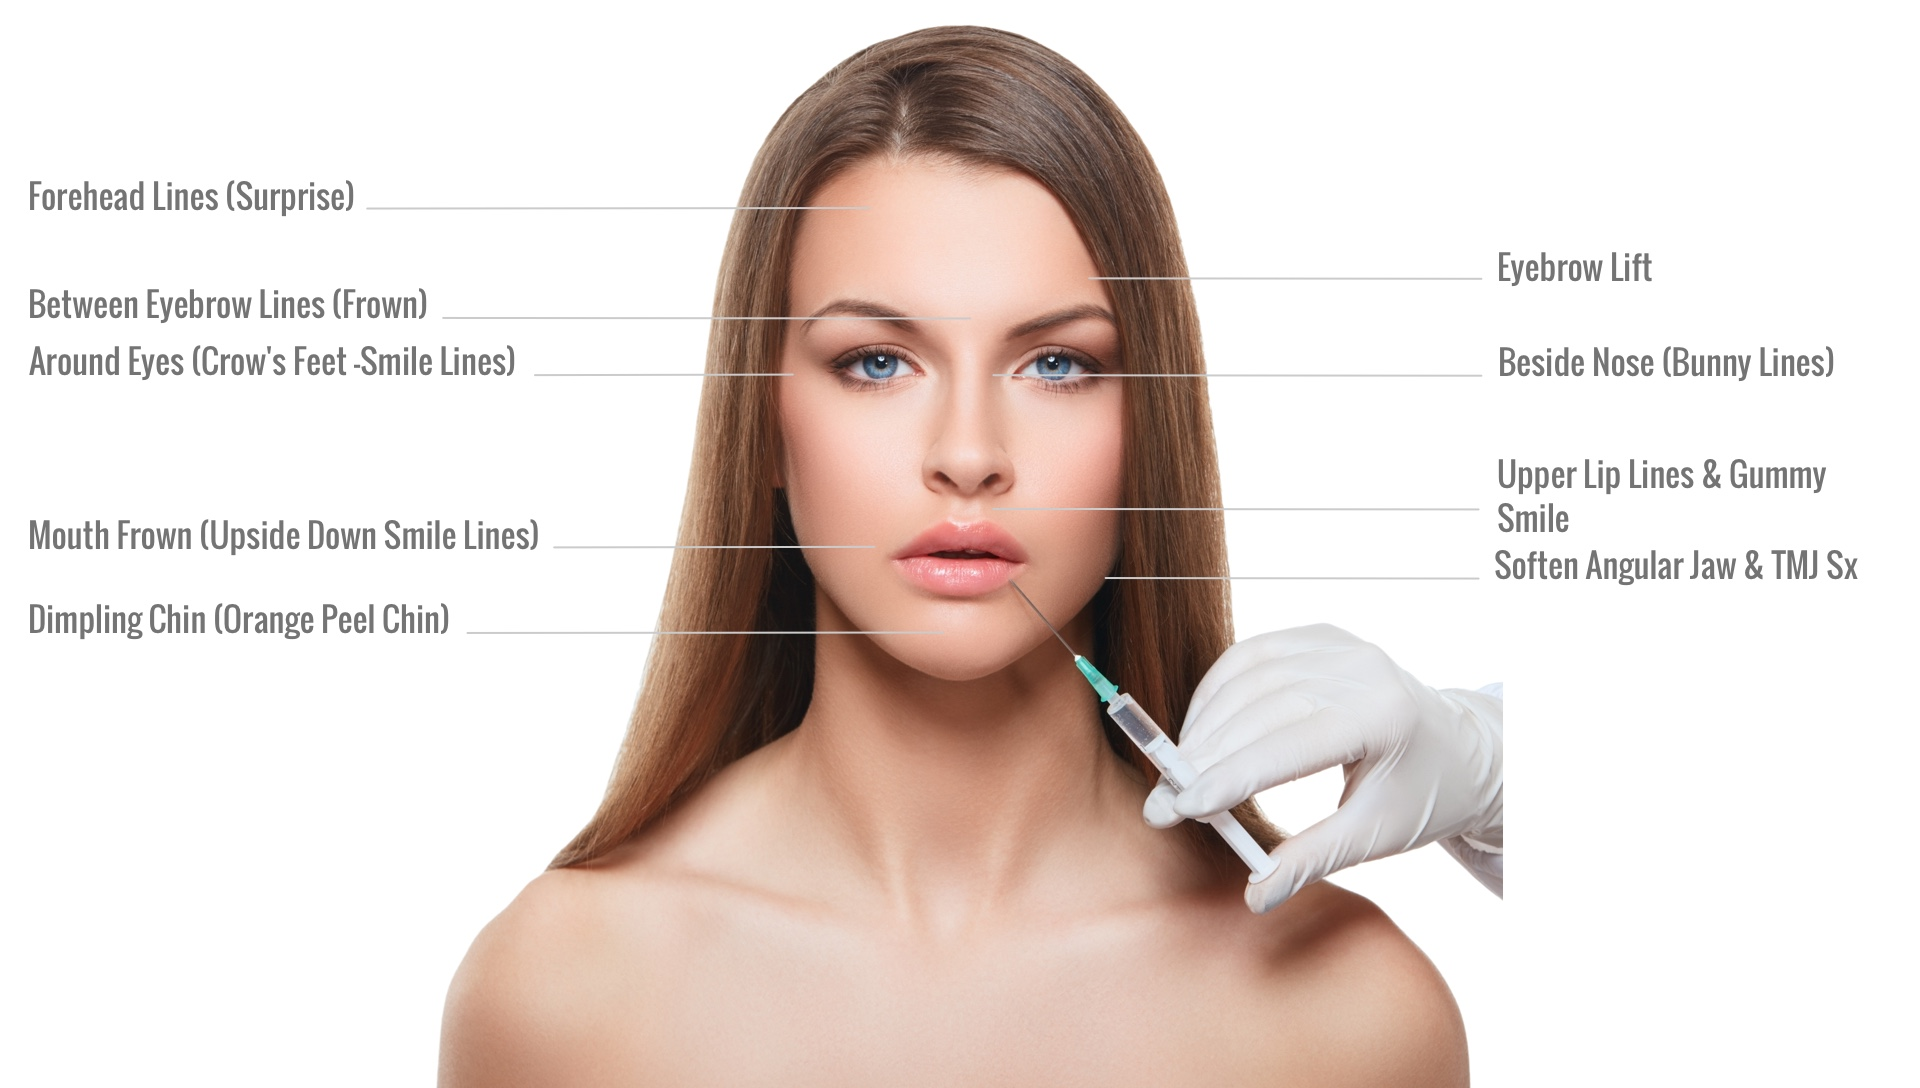 GetNaturopathic Botox & Xeomin Cosmetic Treatment Areas Dr. Jiwani